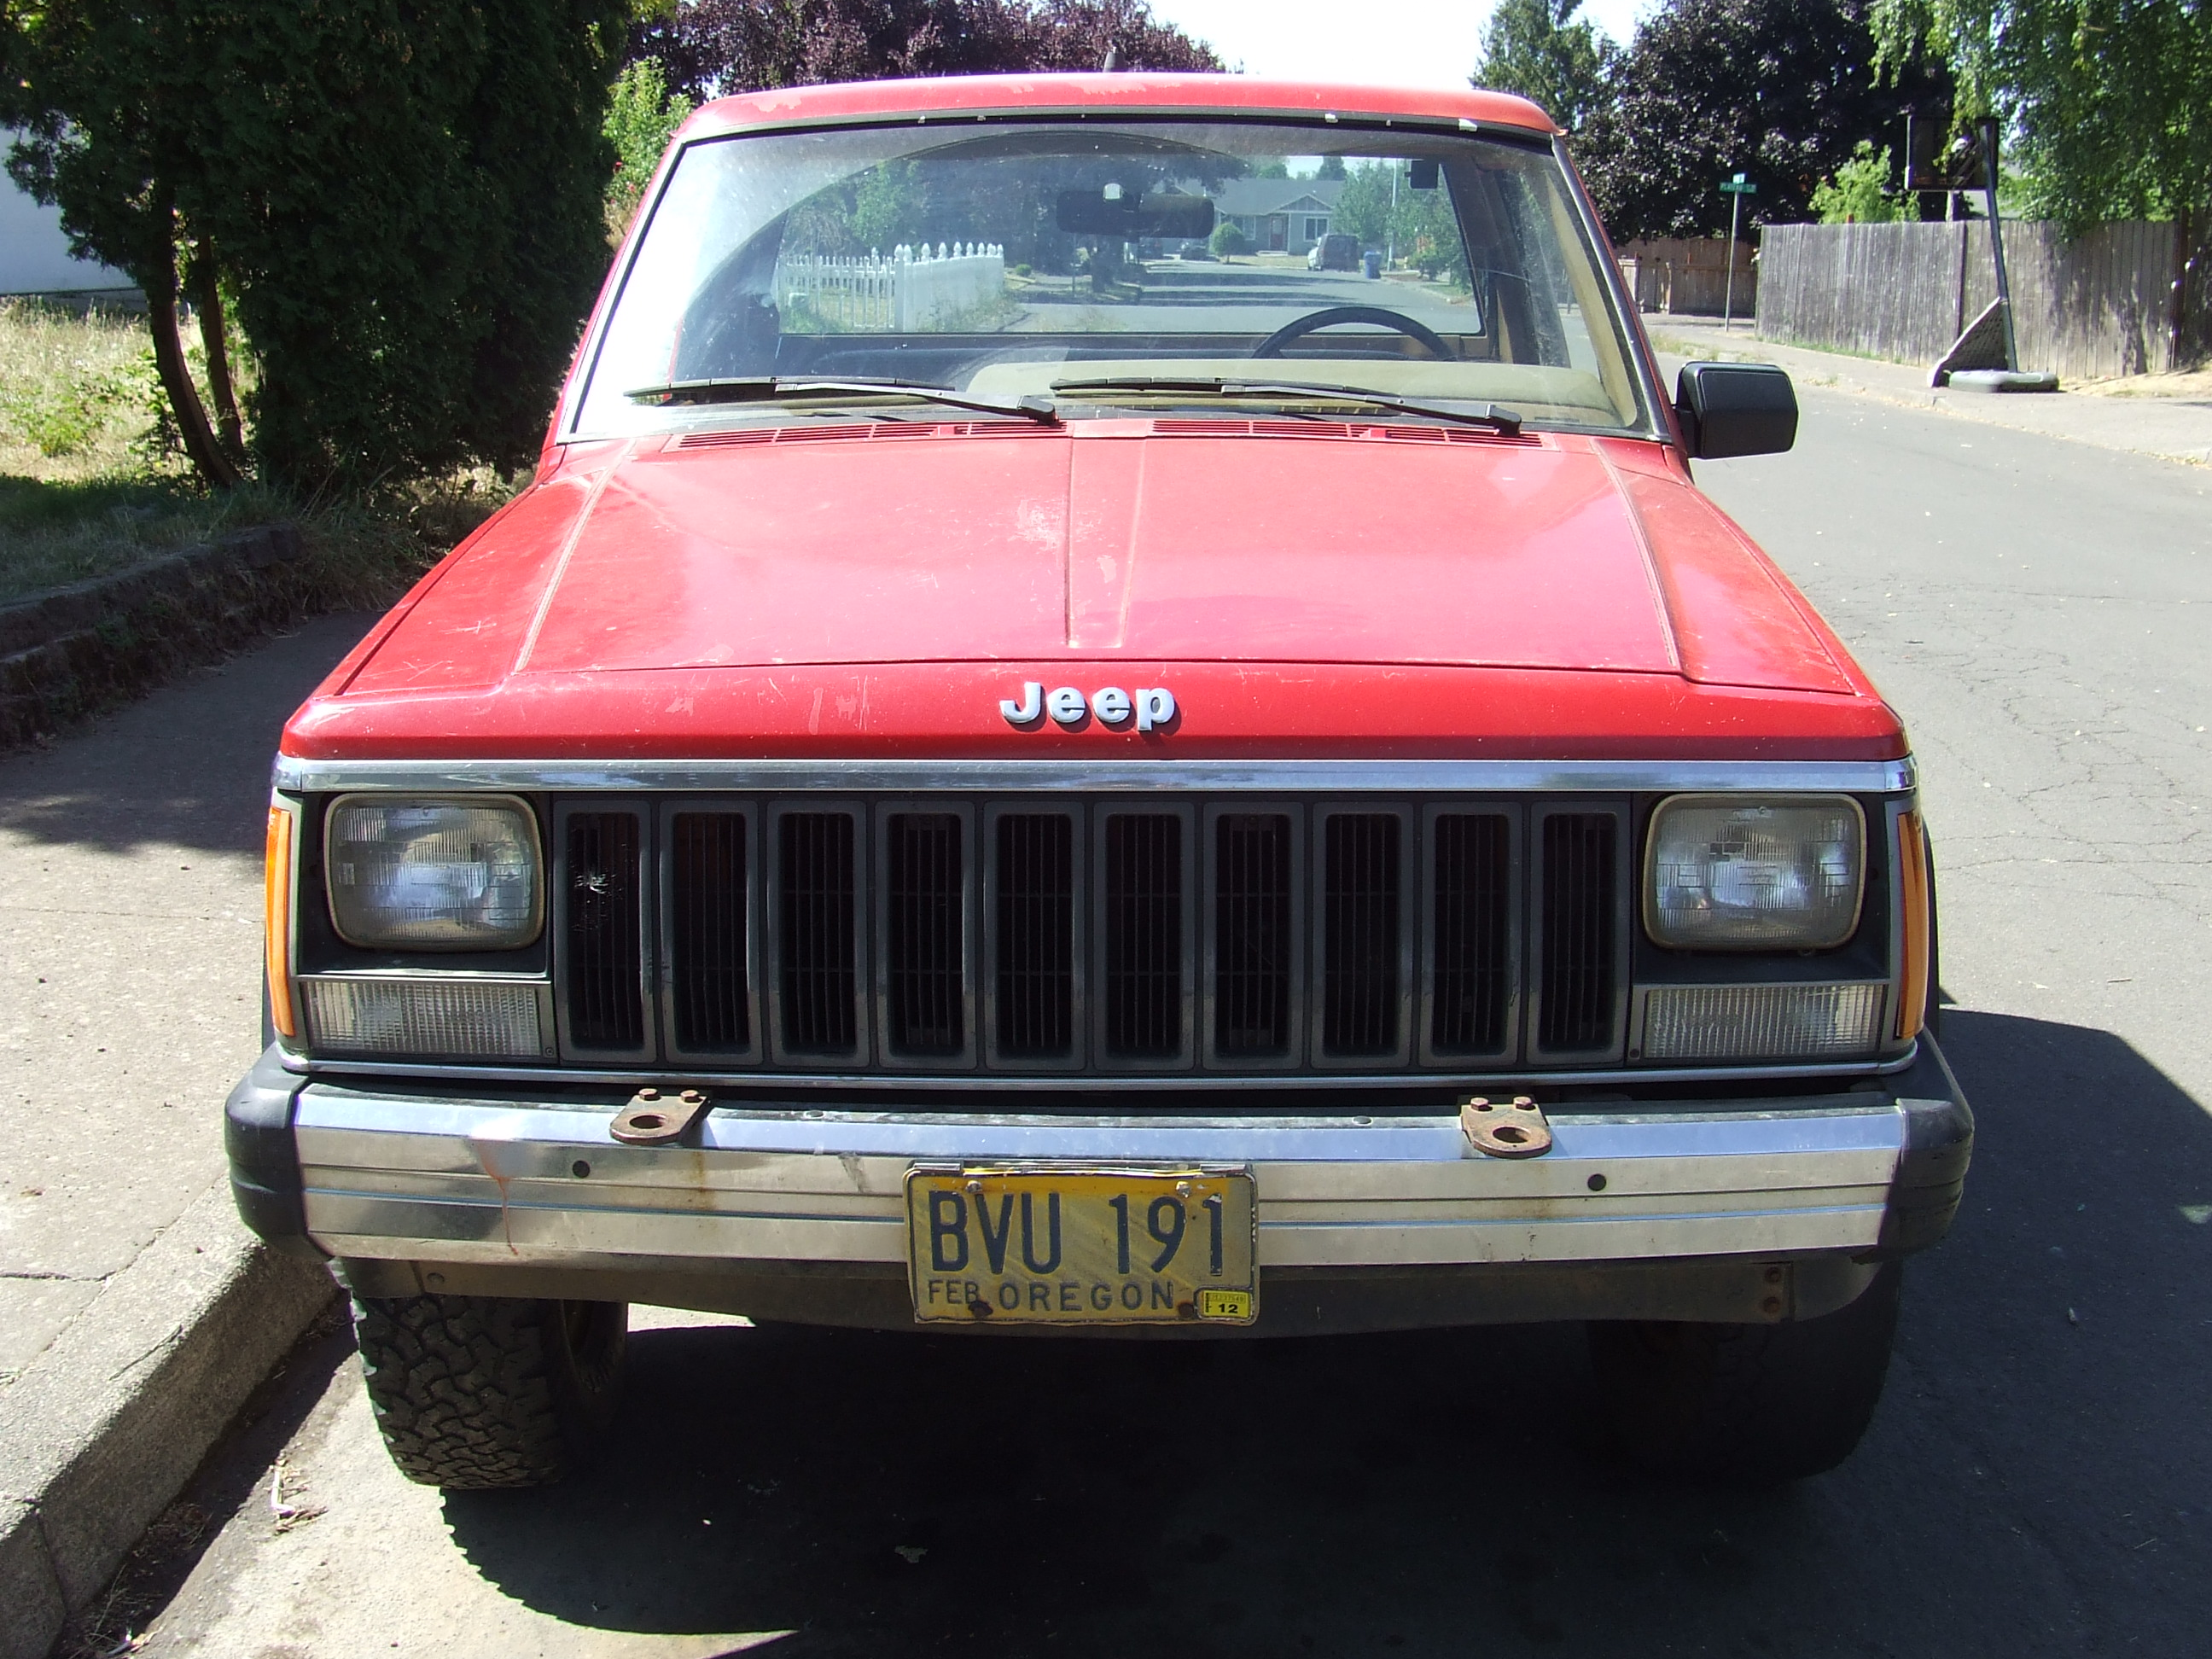 and jeep rust for the regret sale alcoholism taming showthread comanche something